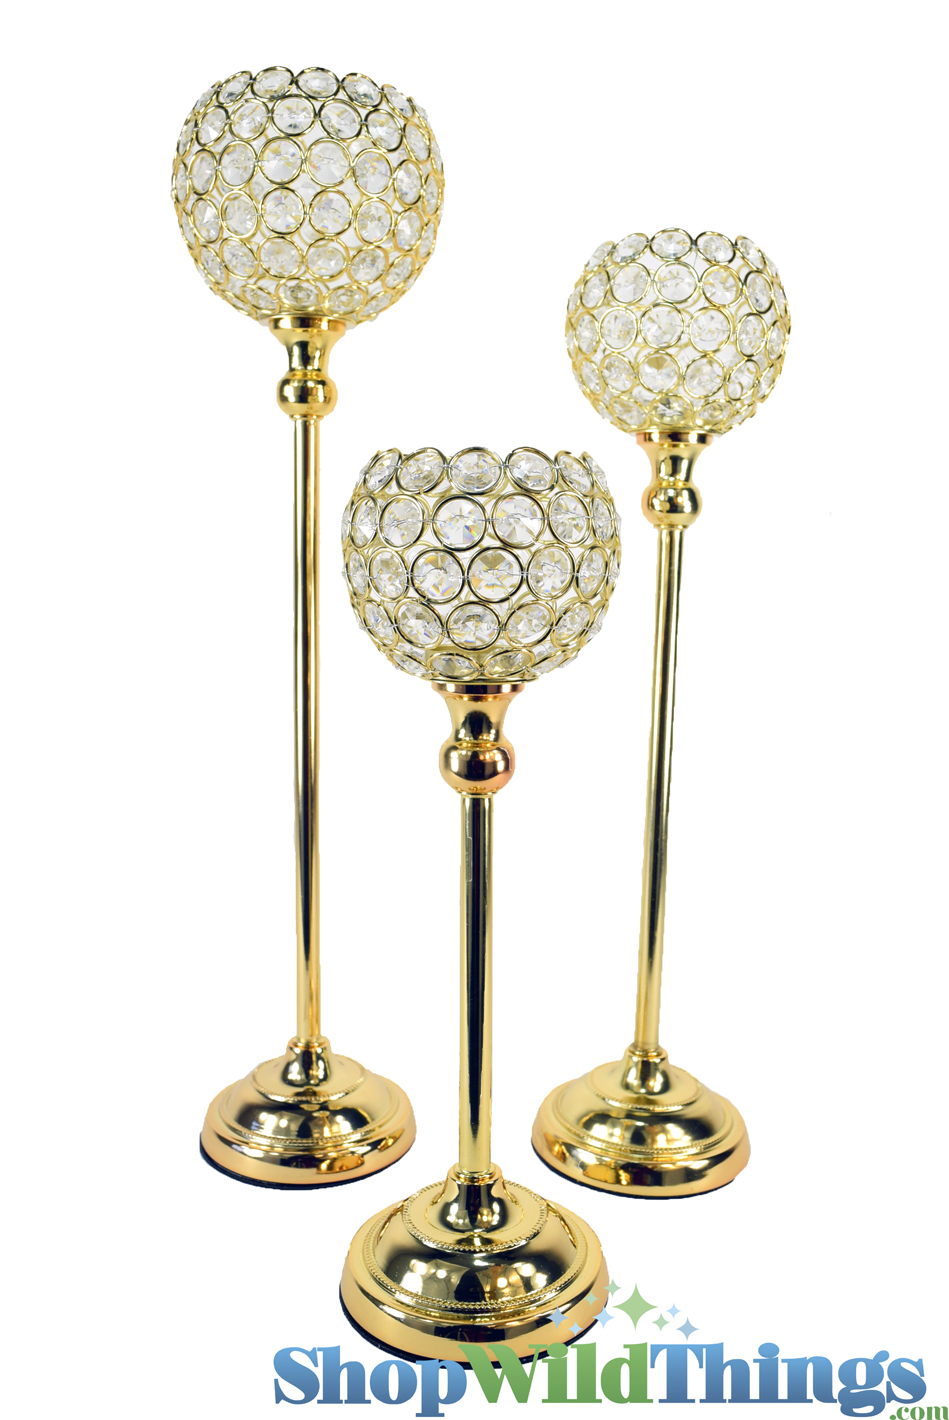 The Zuo Cinta Candle Holder provides a fashionable way to display your wonderfully scented candles. Finished in antique gold, the candle holder features a spiral frame that radiates a warm glow that casts shadows around the room.